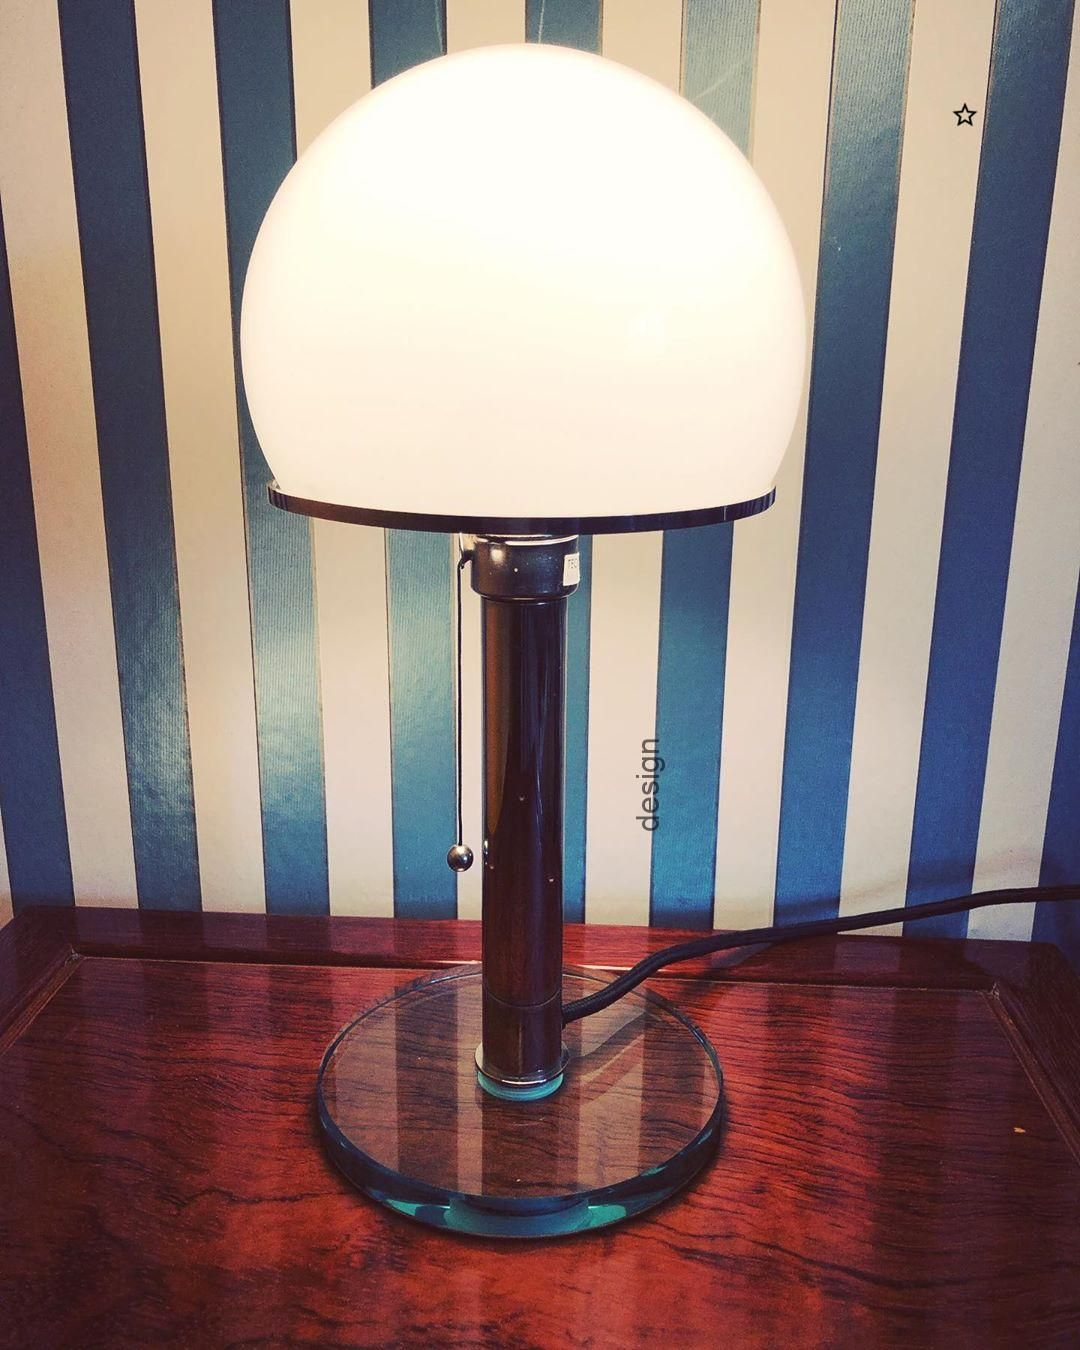 This Large Lobby Lamp Was Designed And Manufactured In Germany Around 1940 In A Modernist Bauhaus Style It F Bauhaus Lampen Modernes Mobeldesign Bauhaus Mobel